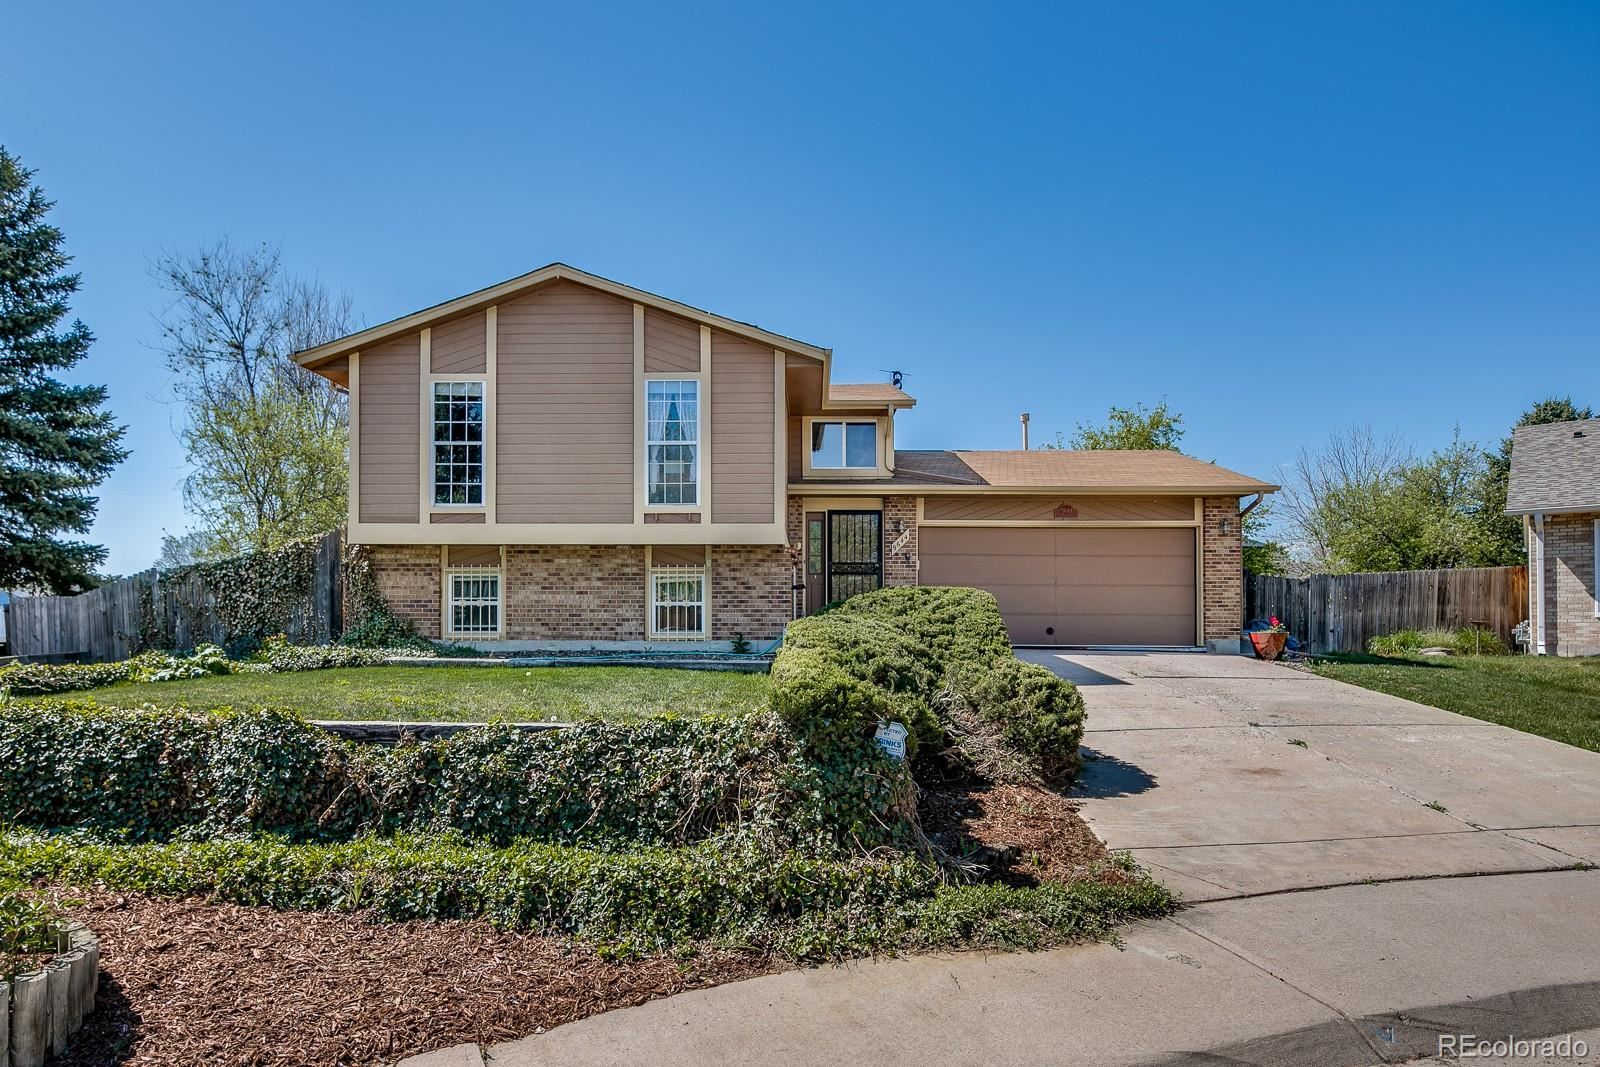 9644 W Grand Avenue, Denver, CO 80123 - #: 5331545